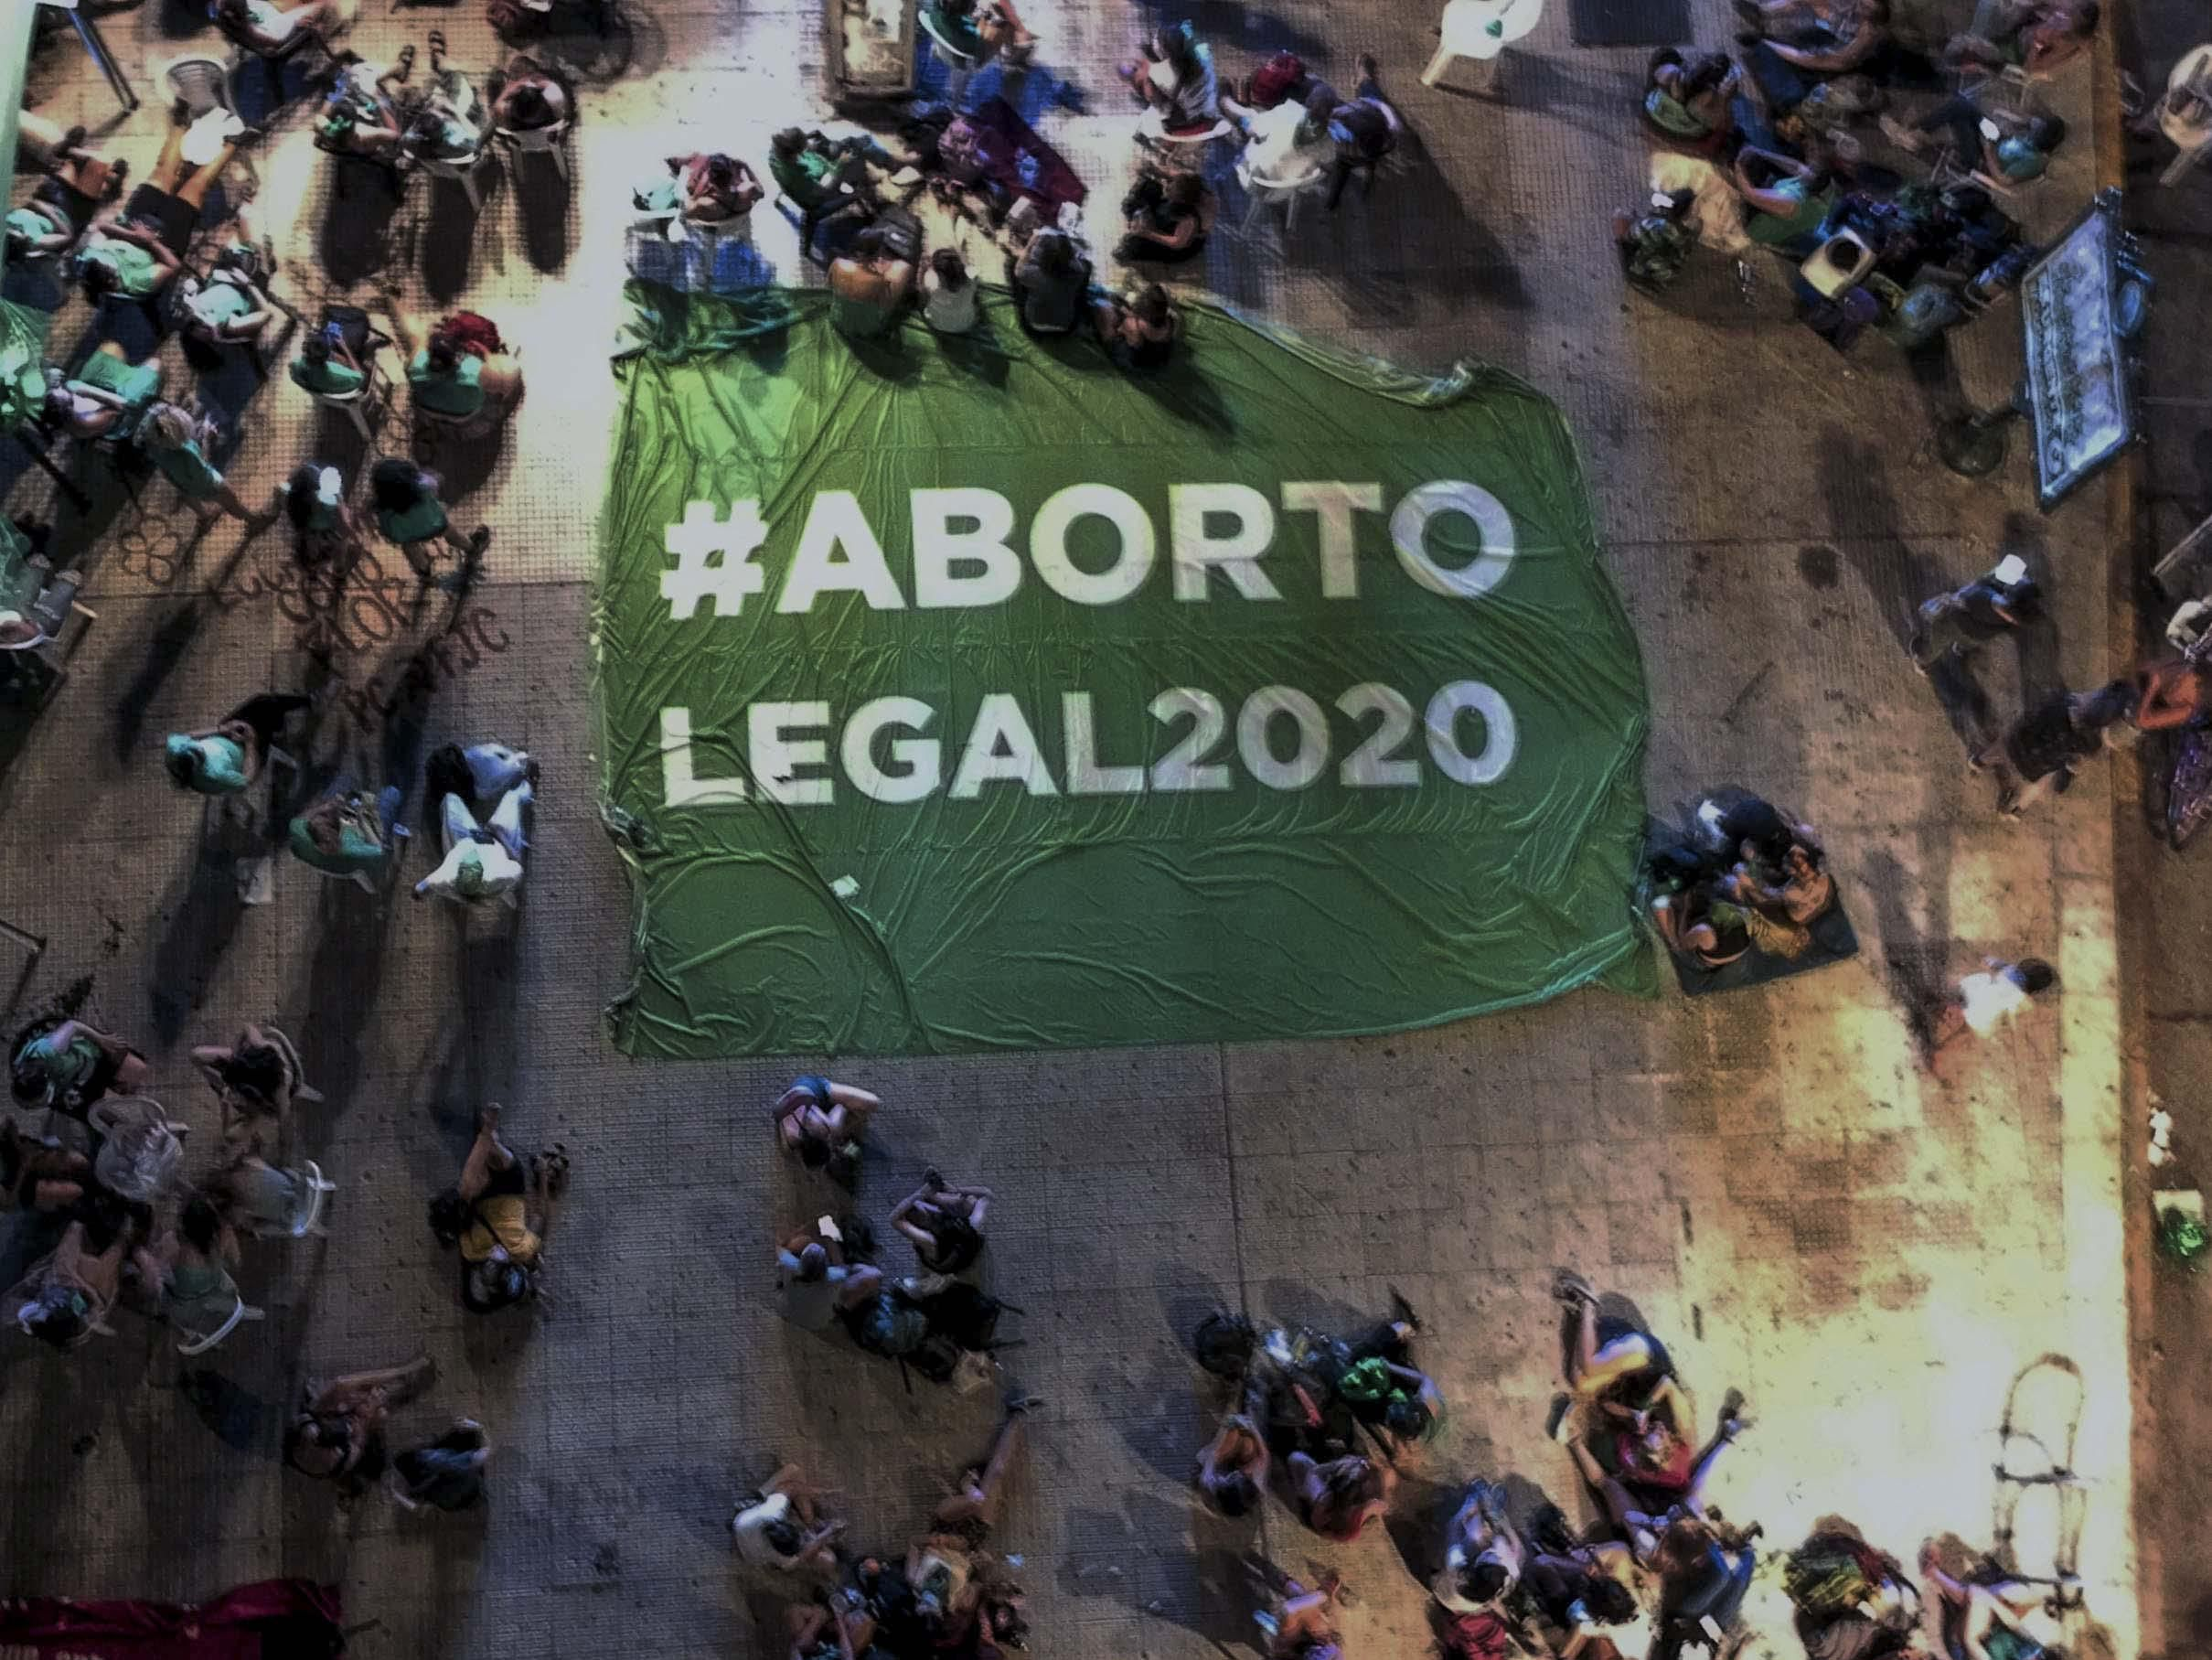 n the photo taken on December 10, 2020, mobilization of women in front of the Congress where the approval in Deputies of the legalization and decriminalization of abortion in Argentina was voted.